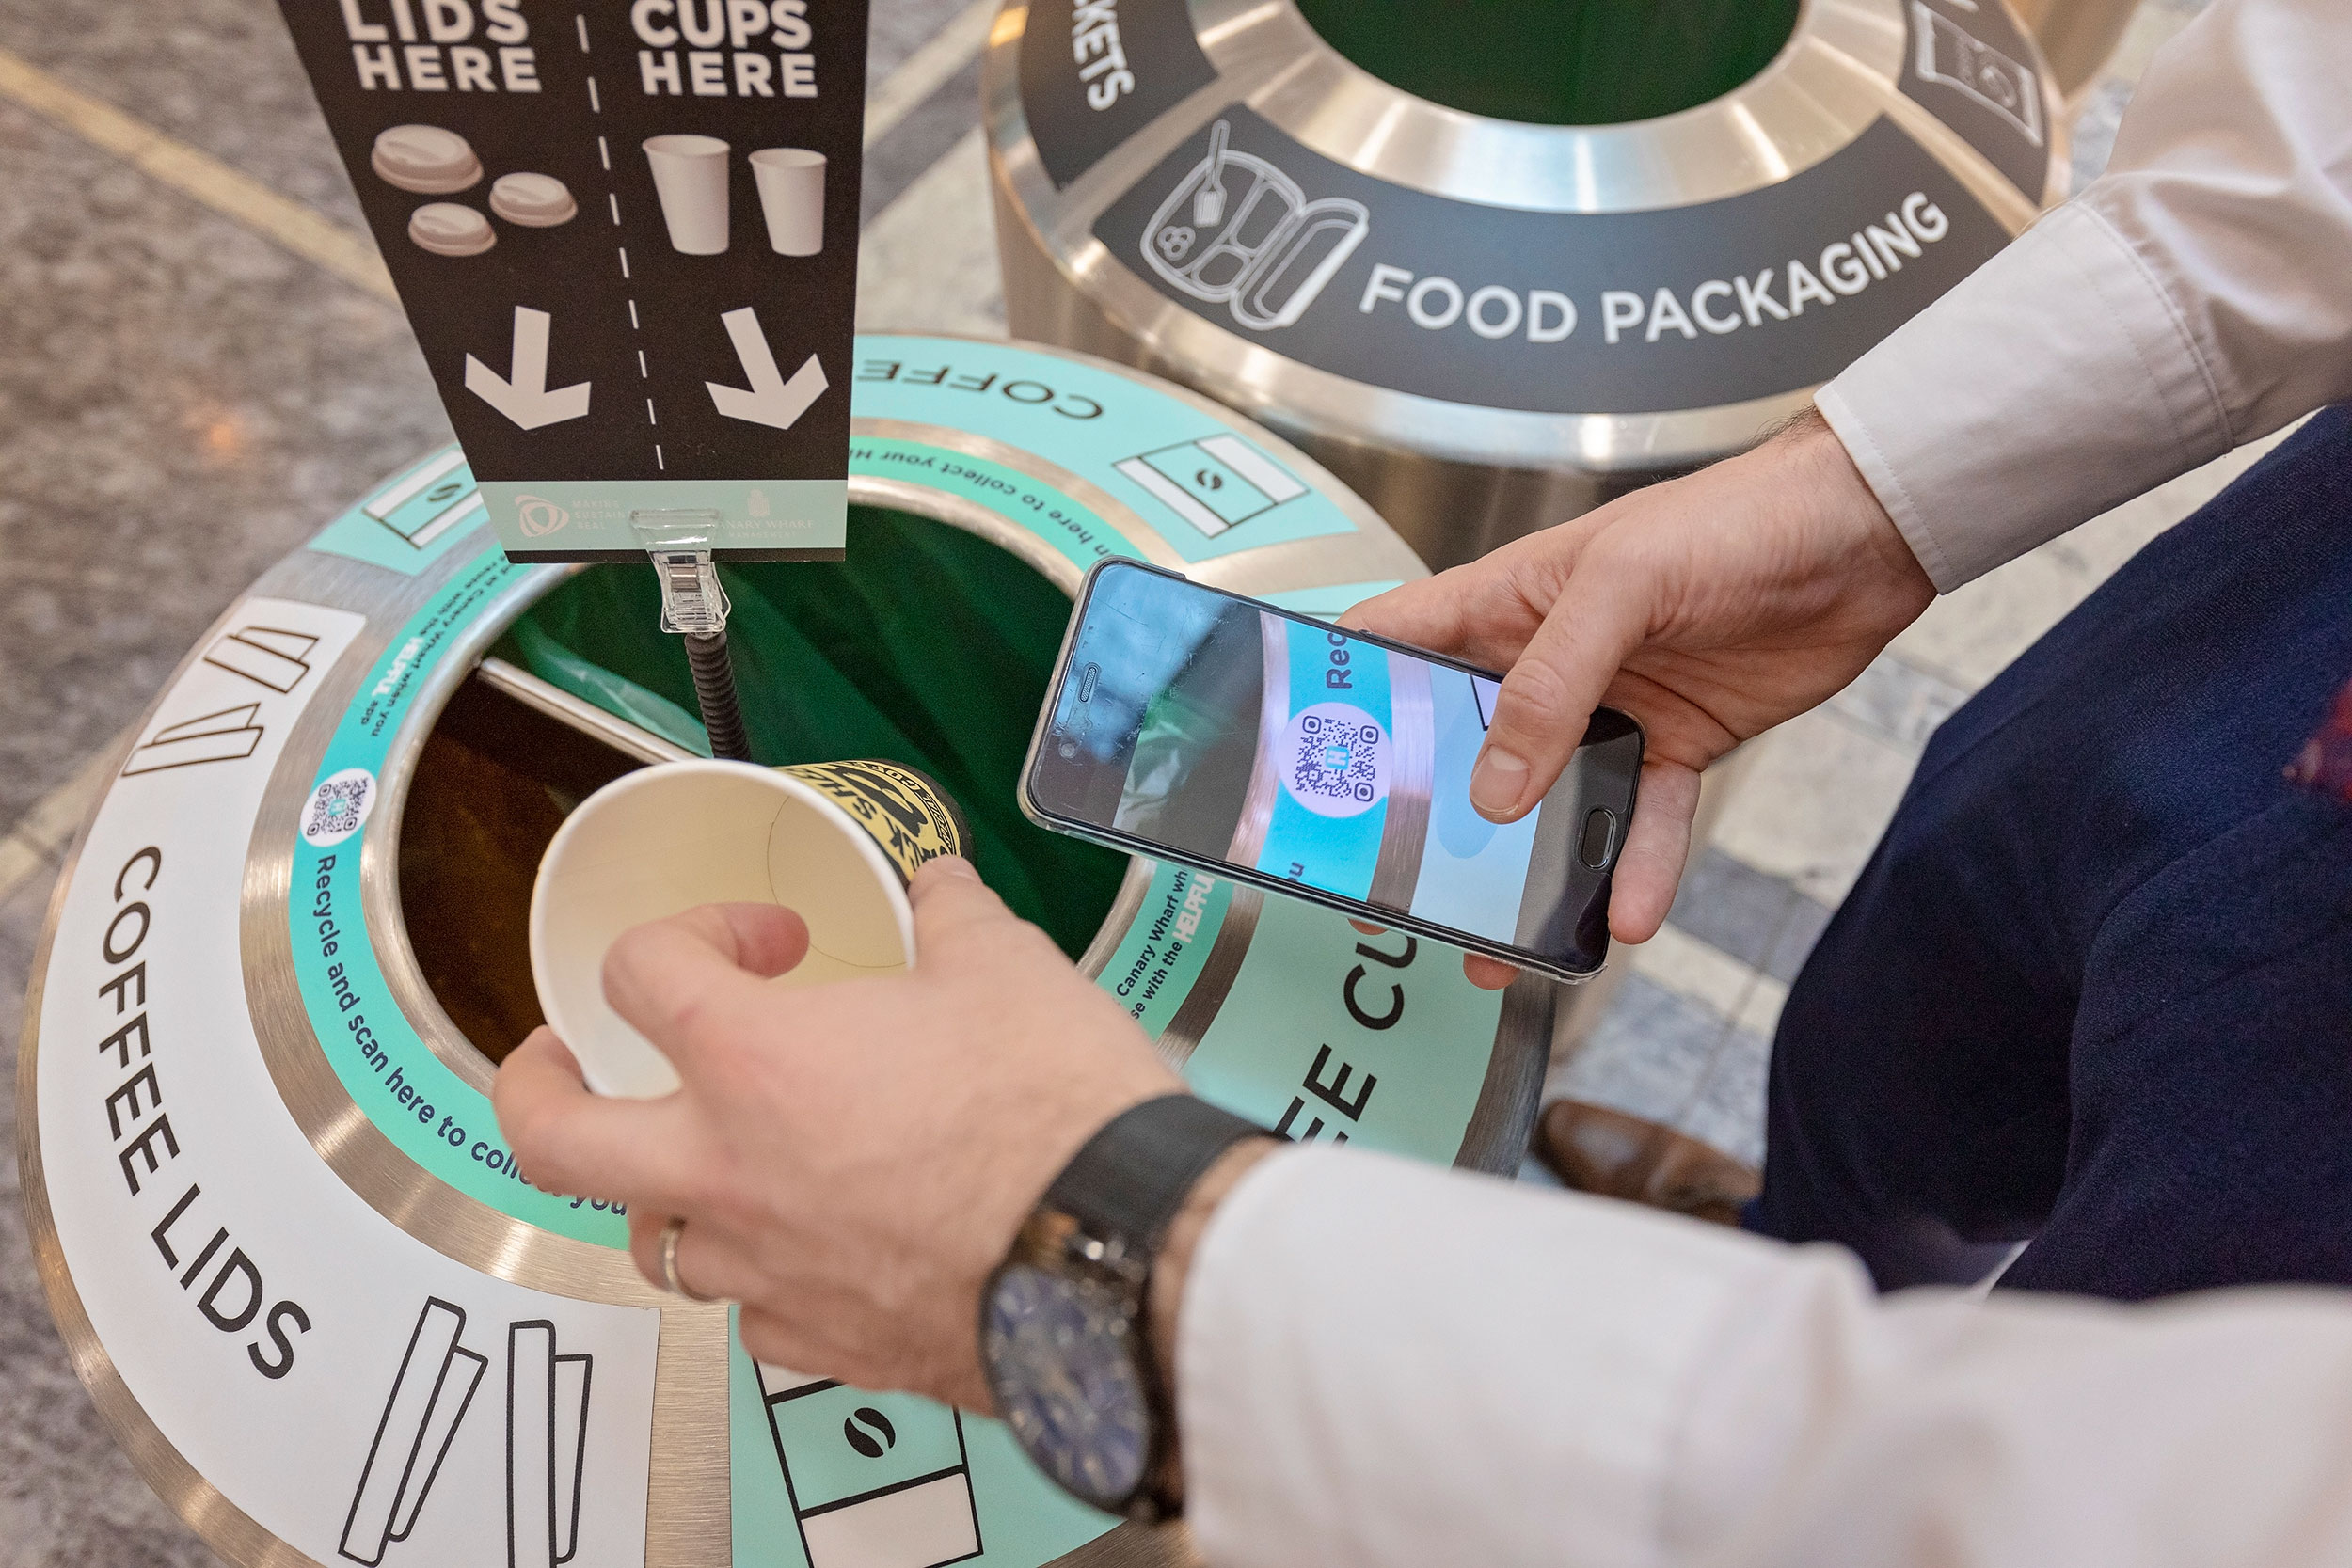 REWARDING OUR COMMUNITY - Canary Wharf Group also piloted the HELPFUL app, designed to help anyone at Canary Wharf to correctly recycle their waste, make the switch to reusable products to avoid single-use plastic and earn rewards at the same time.